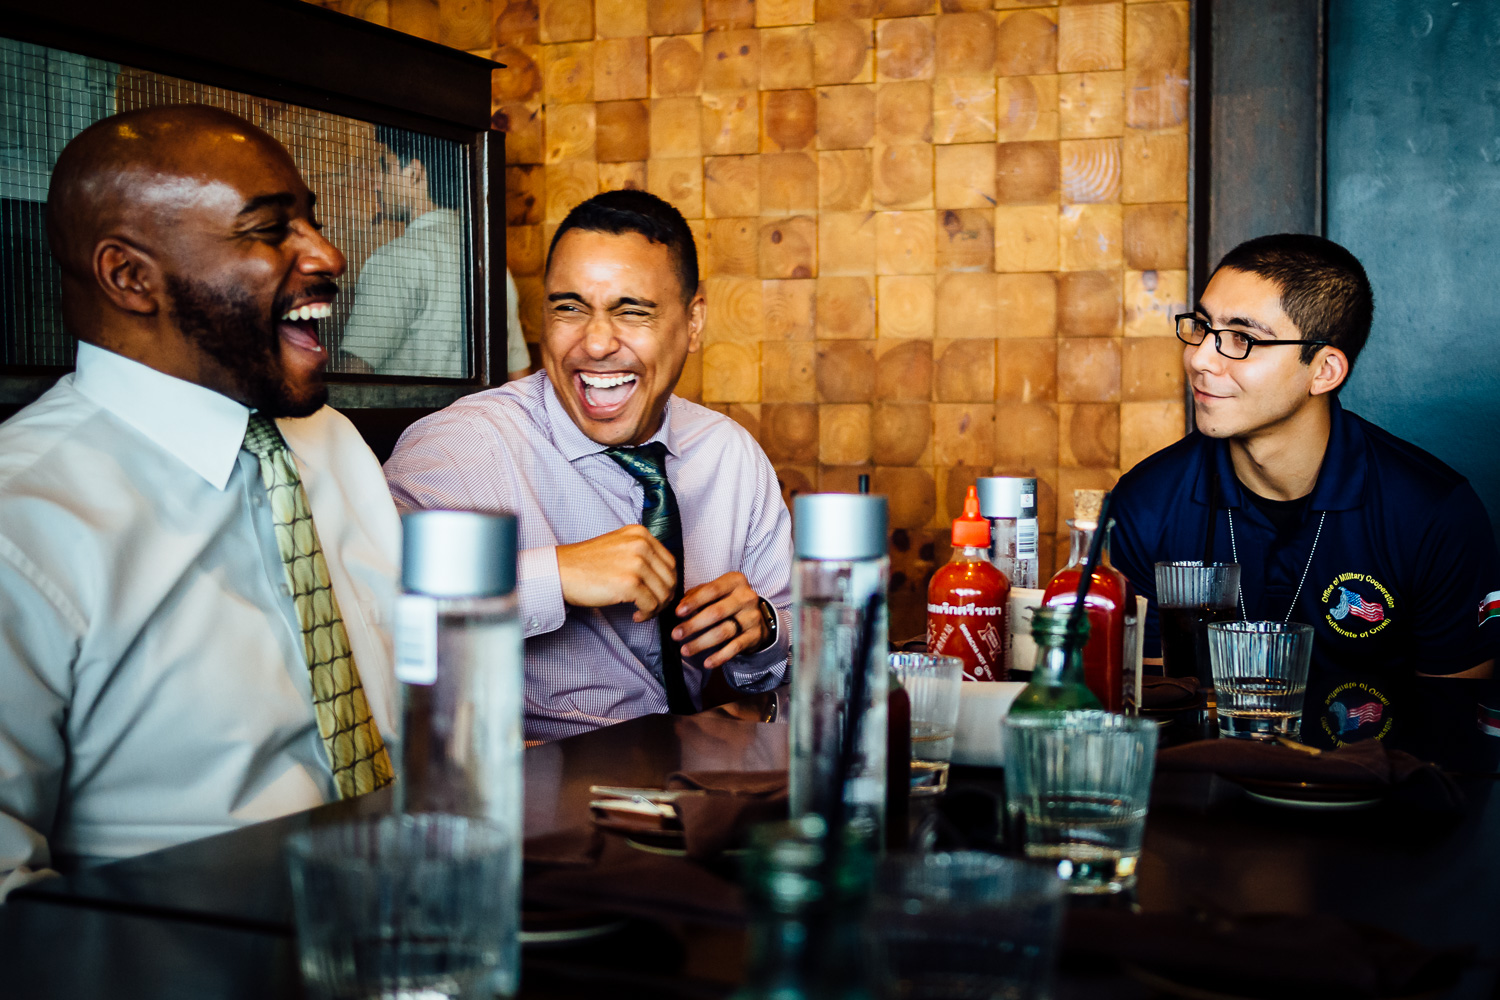 Friends-Laughing-Restaurant-Laughter-Photography-Tips-Durazo-Photography.jpg